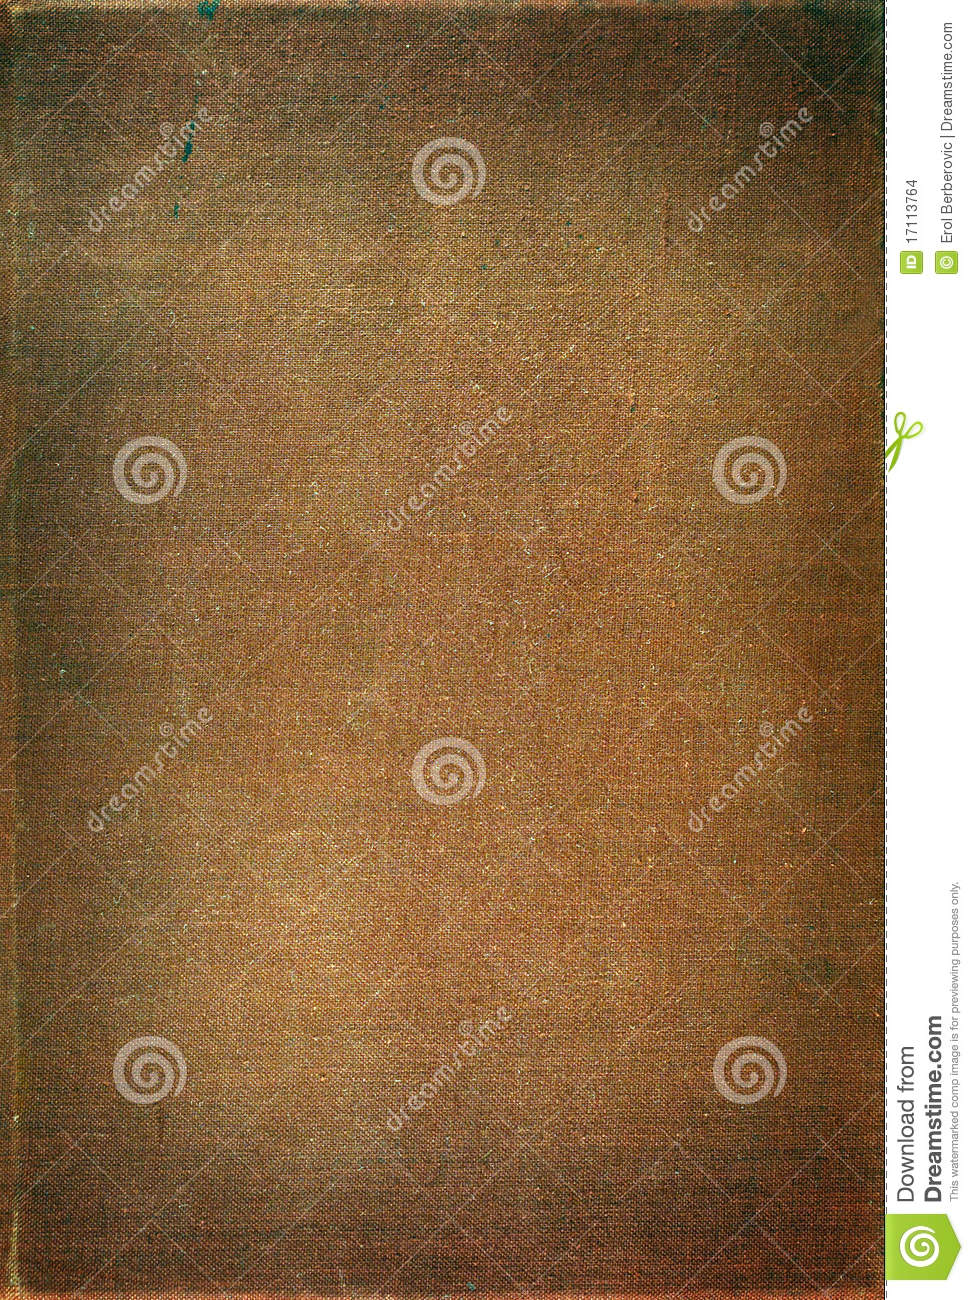 Worn Book Cover Texture ~ Book texture stock images image